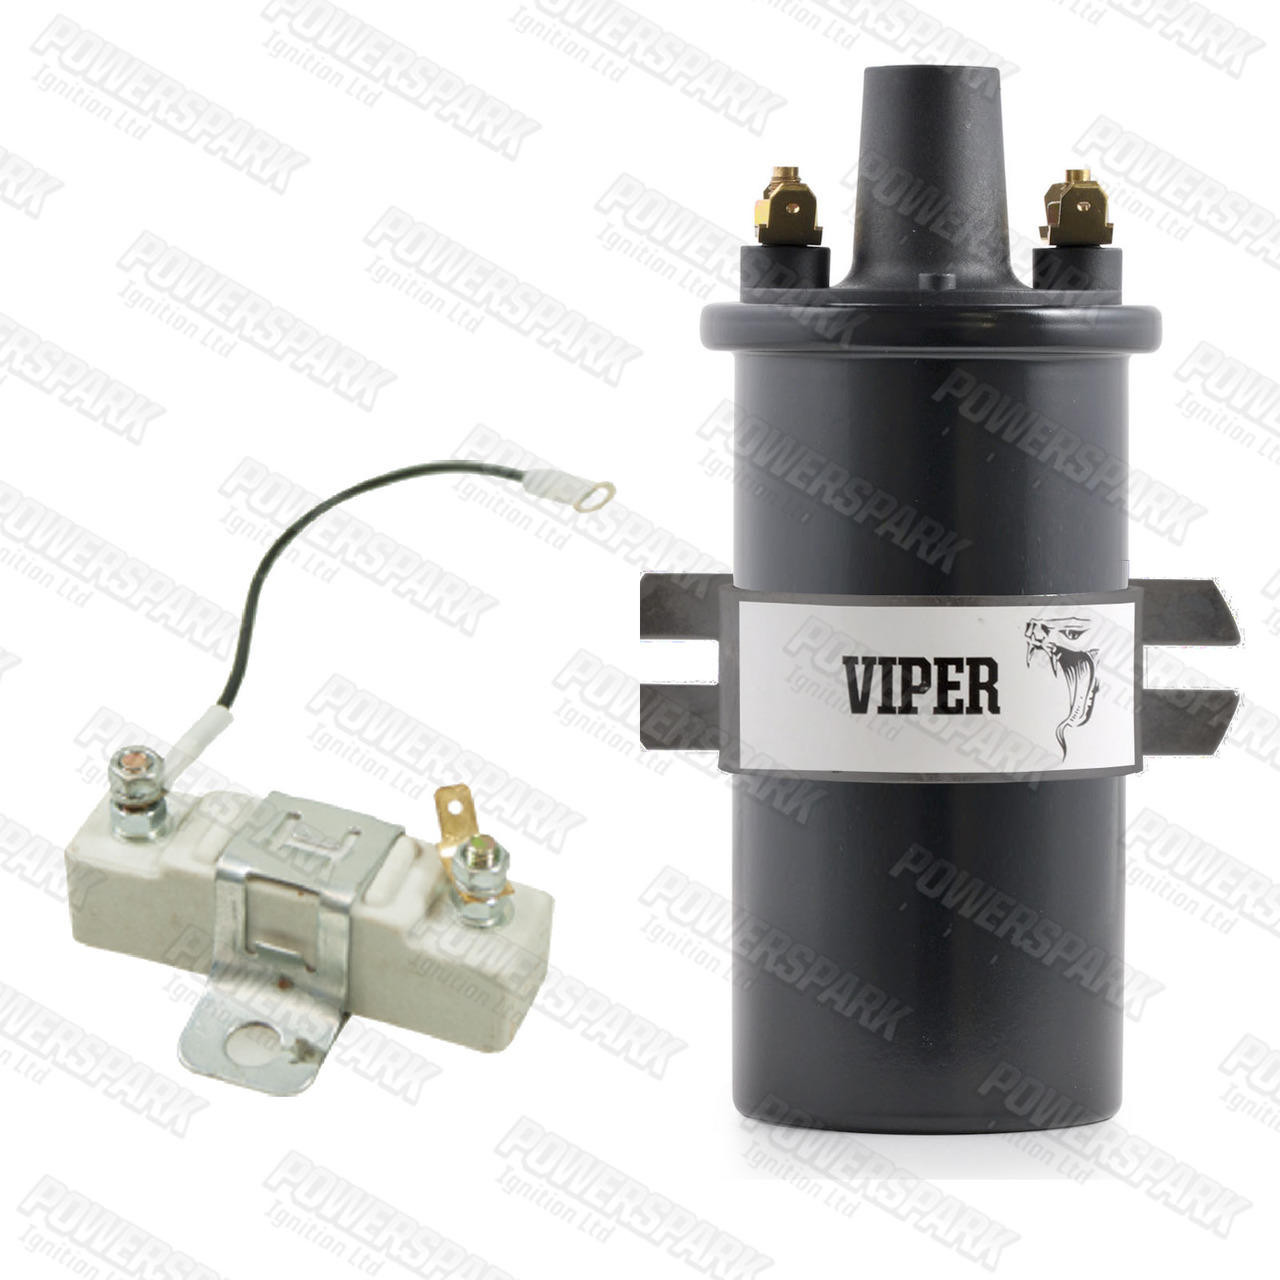 Viper Viper Dry Ignition Coil Ballast replaces Lucas DLB110, DLB102 with Ballast